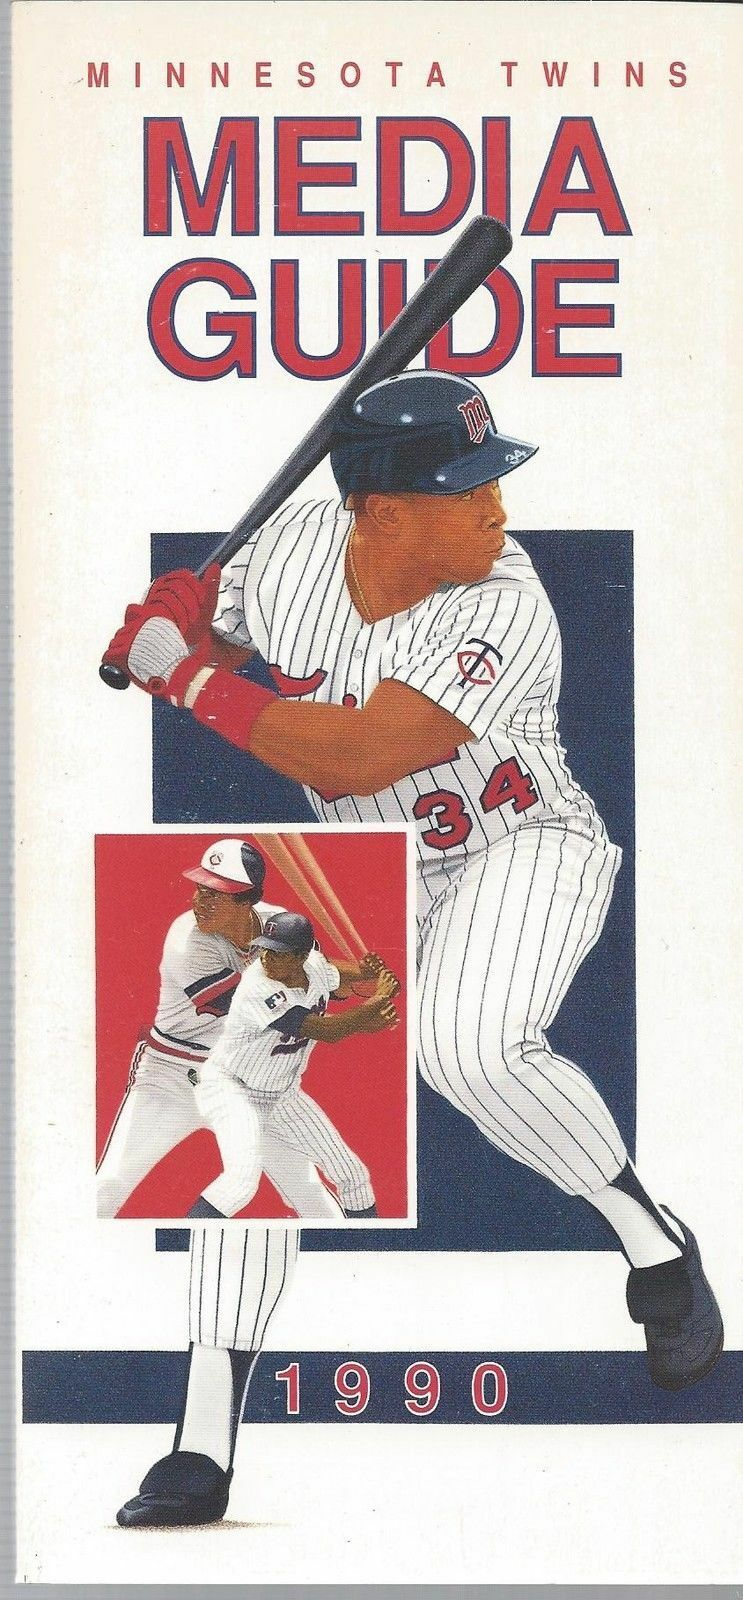 1990 Minnesota Twins Baseball MLB Media Guide - Annual Player Information